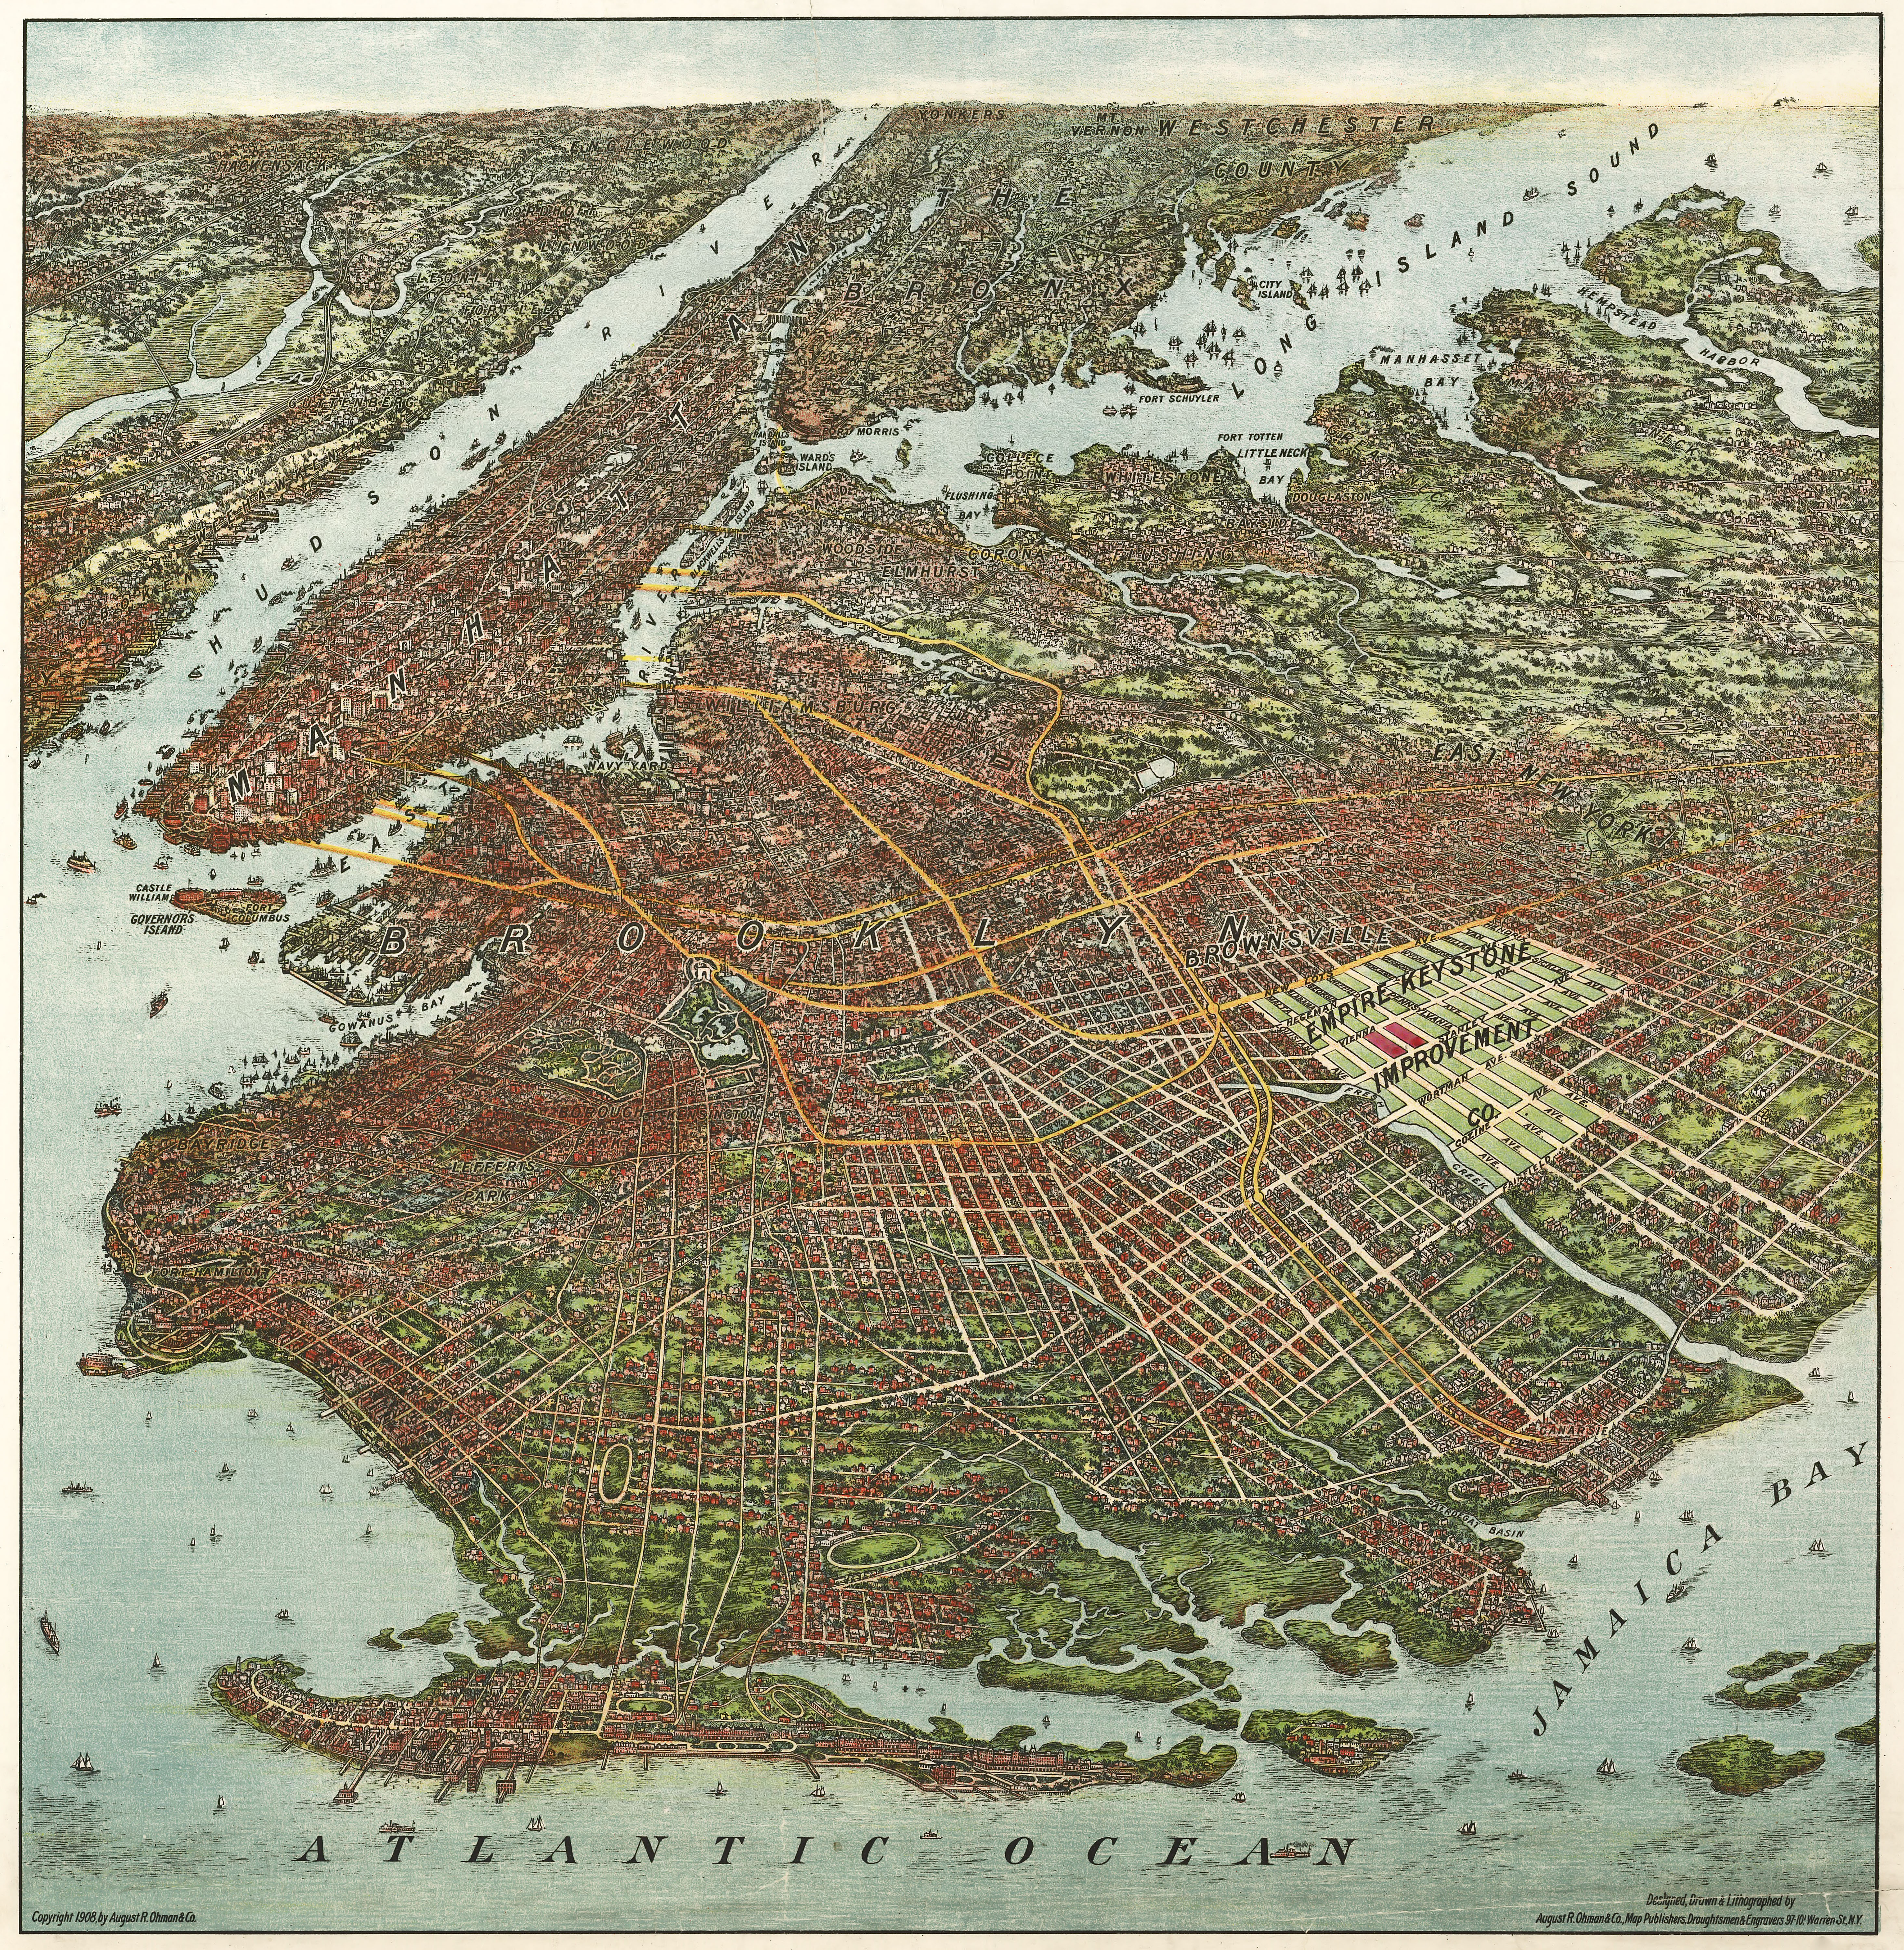 Ohmans map of Brooklyn 1908